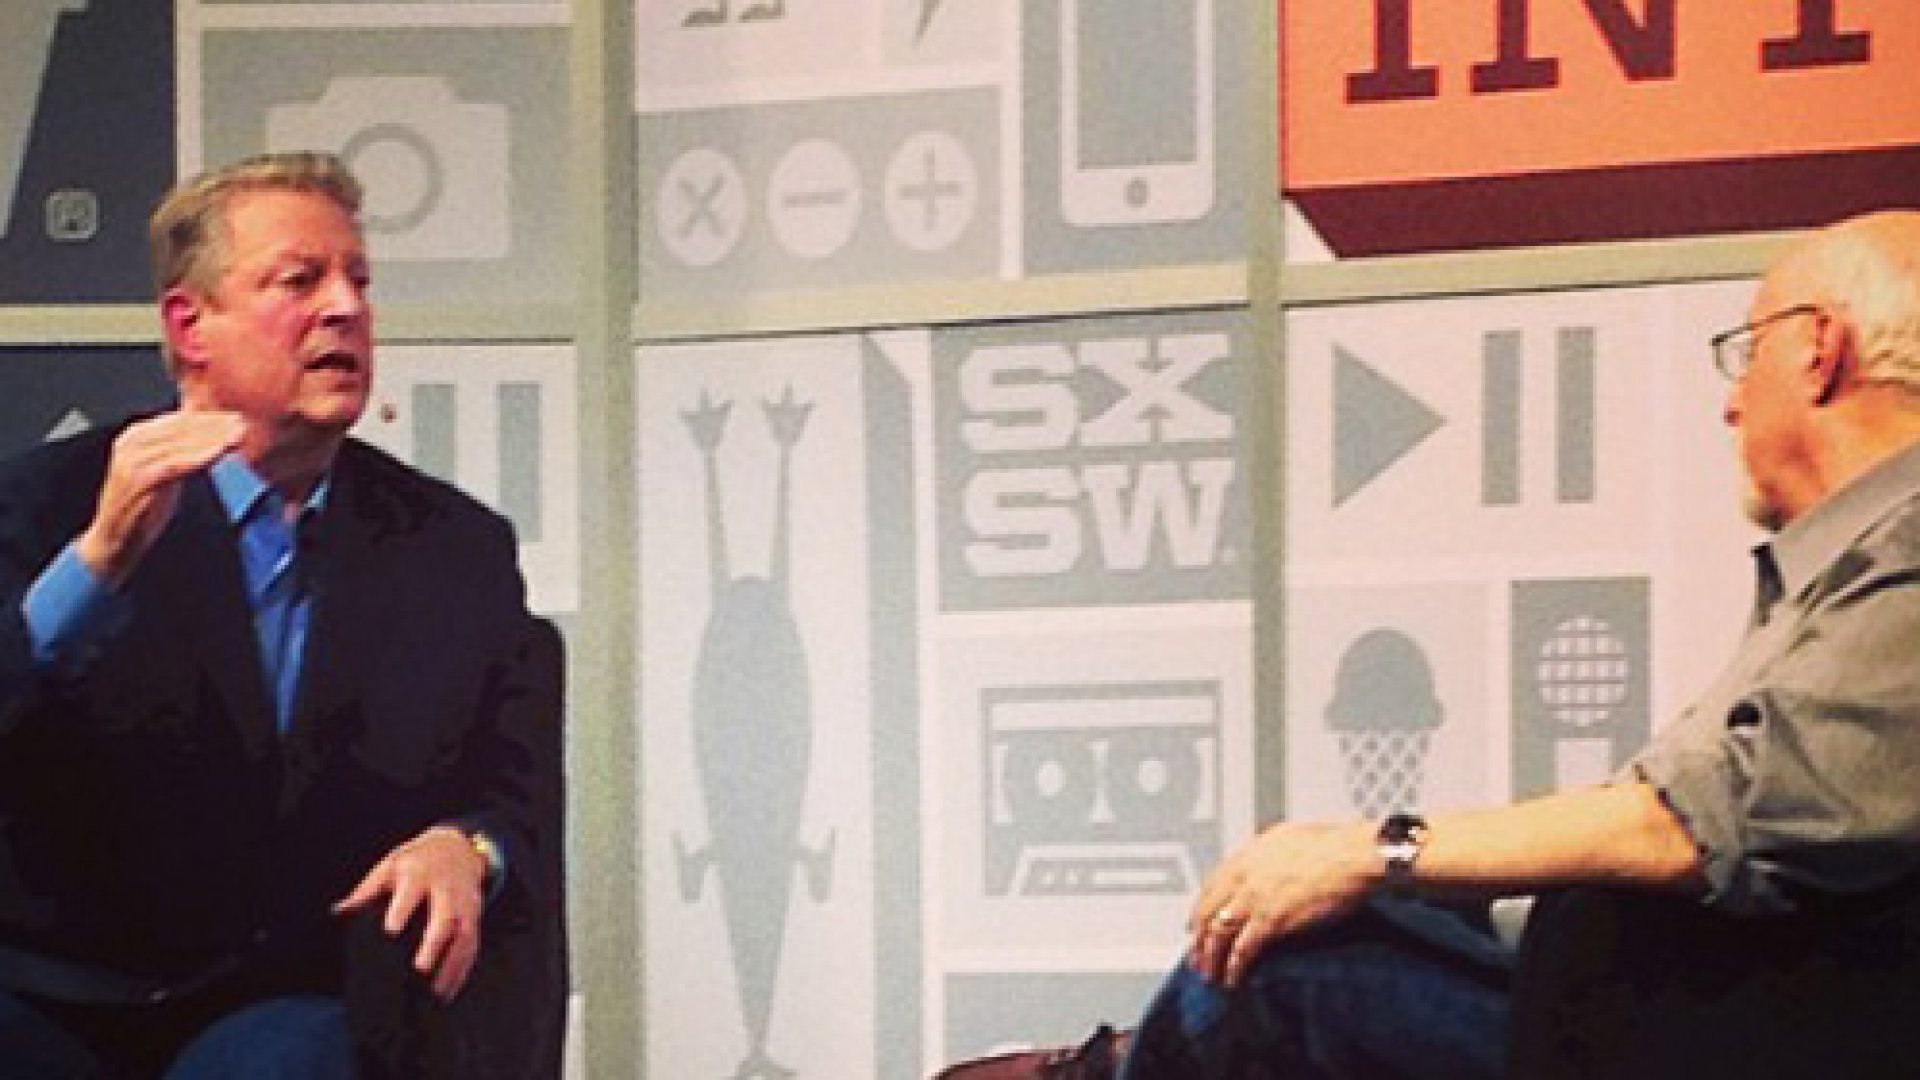 Former U.S. Vice President Al Gore, left, speaks with Wall Street Journal columnist Walt Mossberg during an interview at the South by Southwest Interactive Festival (SXSW) in Austin Texas, U.S., on Saturday, March 9, 2013.